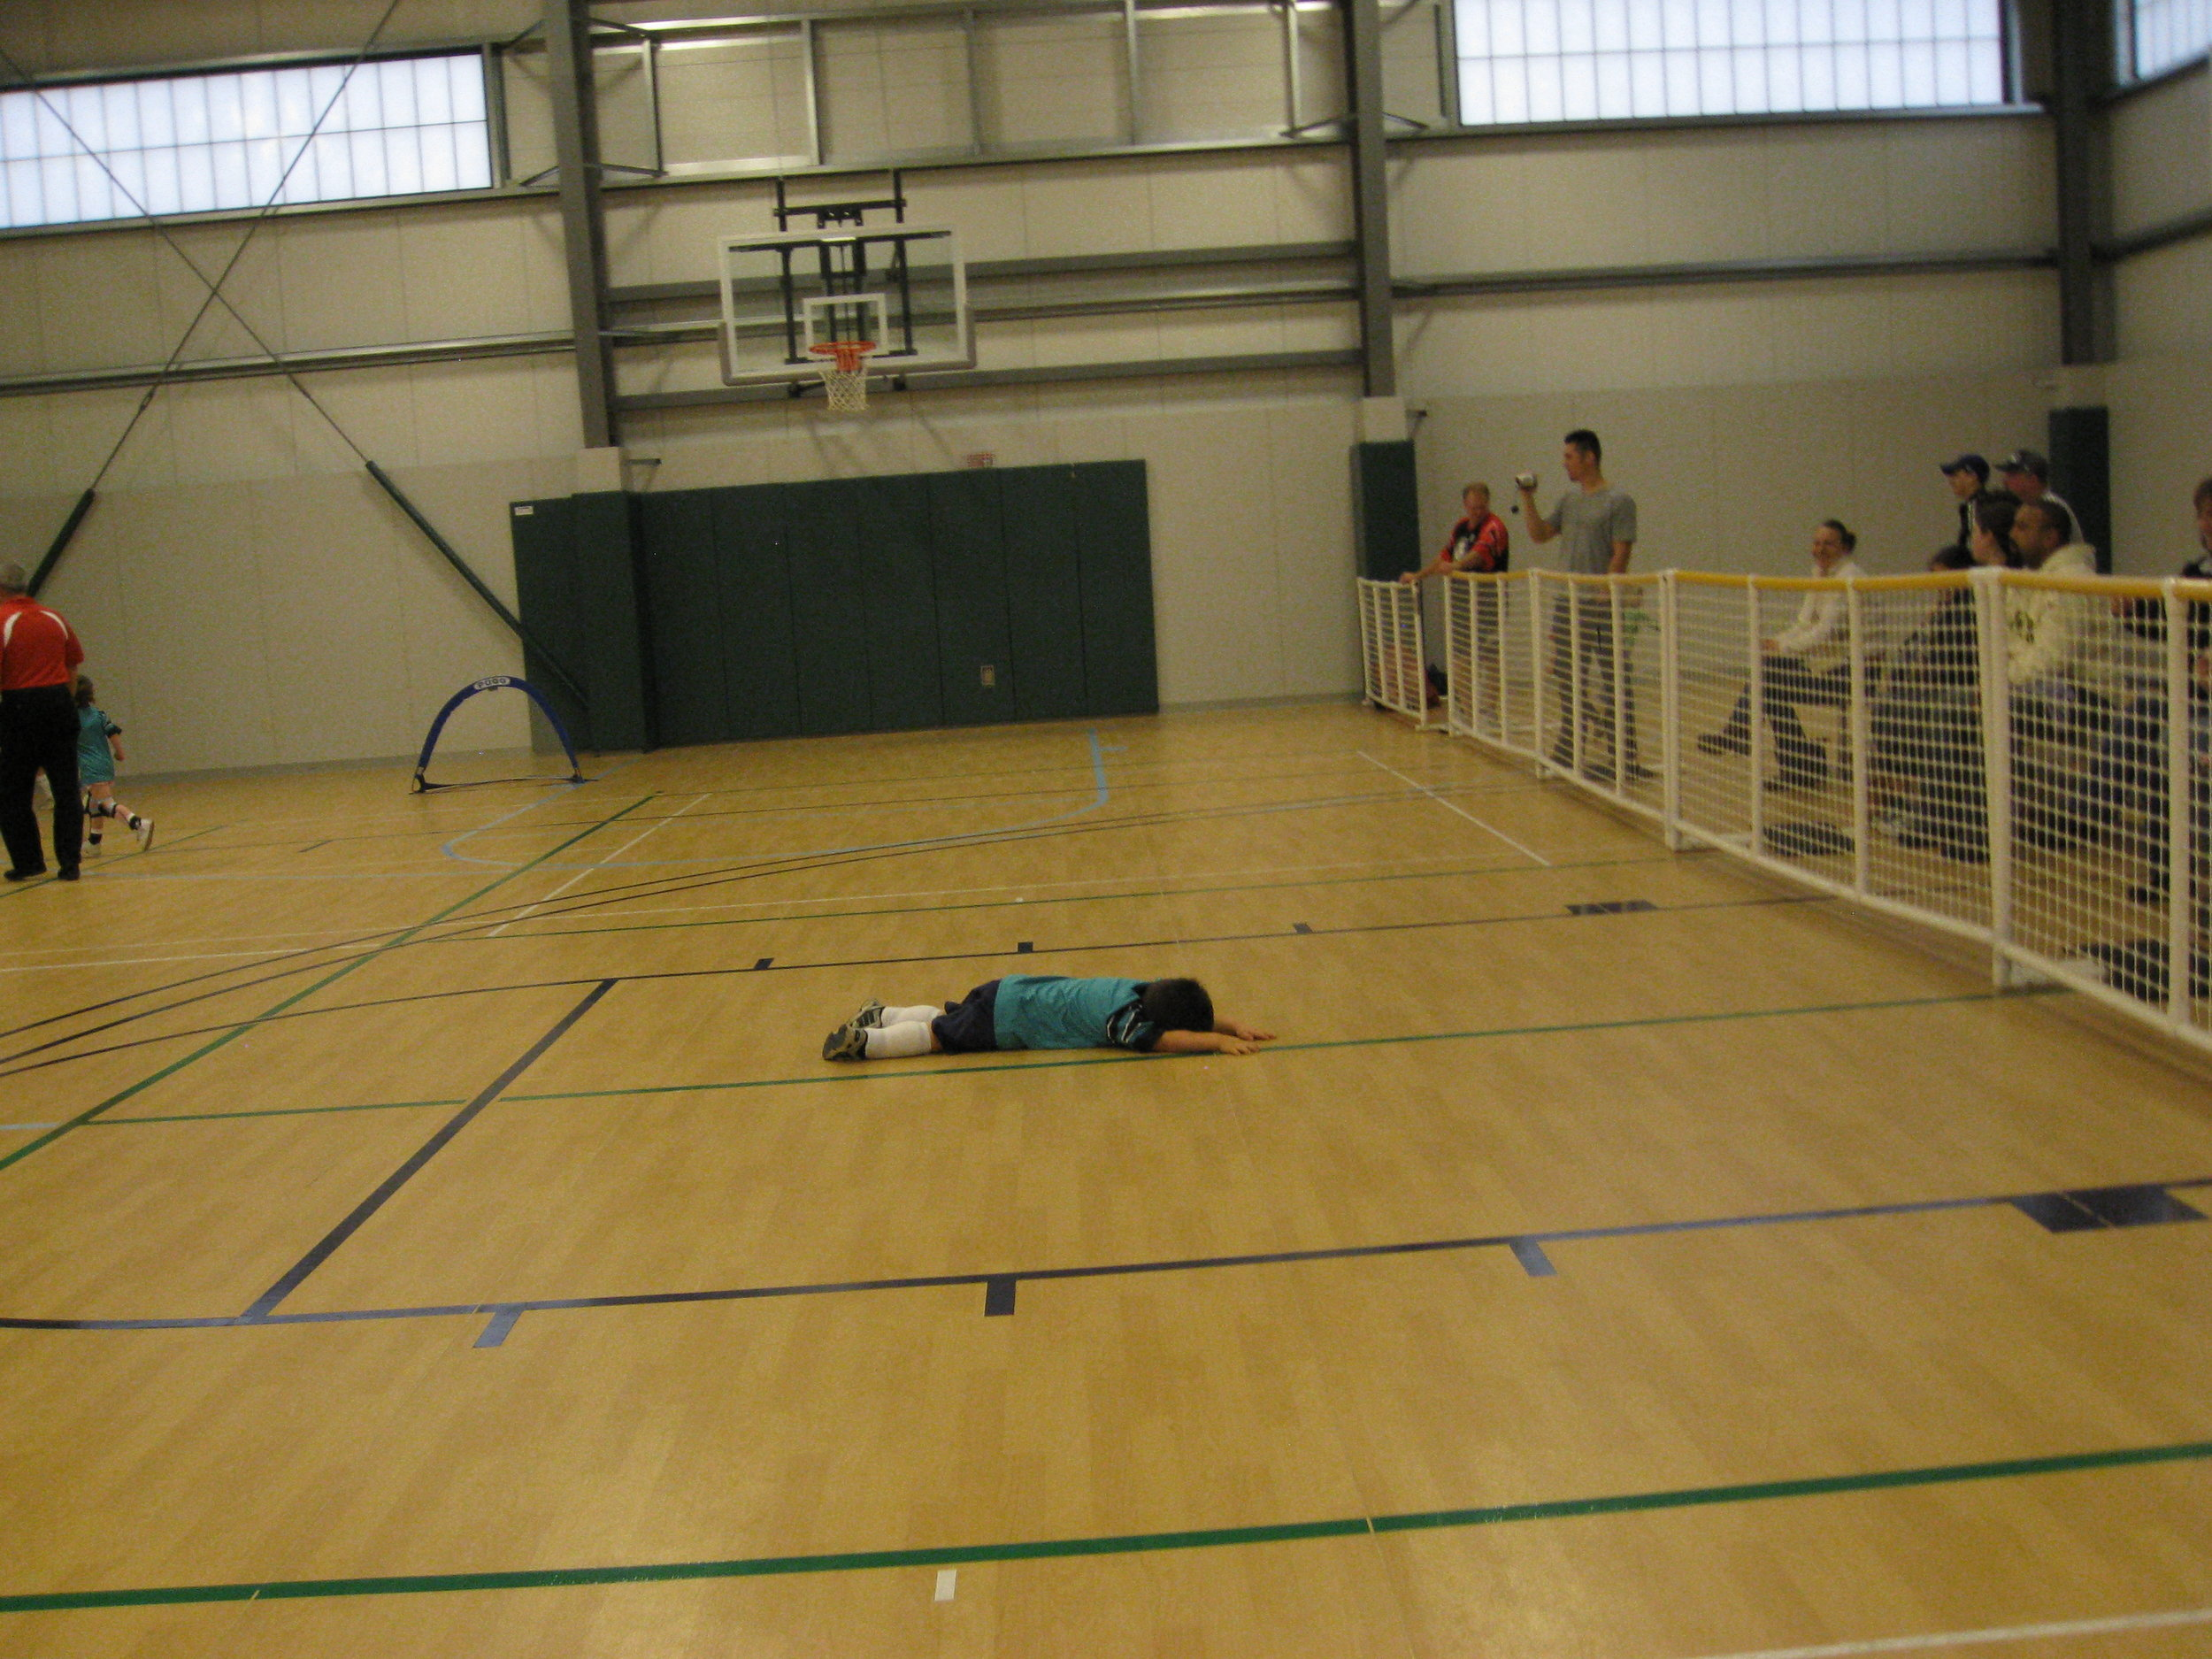 INDOOR SOCCER - What to do in Southern Oregon - Things to do in Medford - Medford Parks and Recreatio